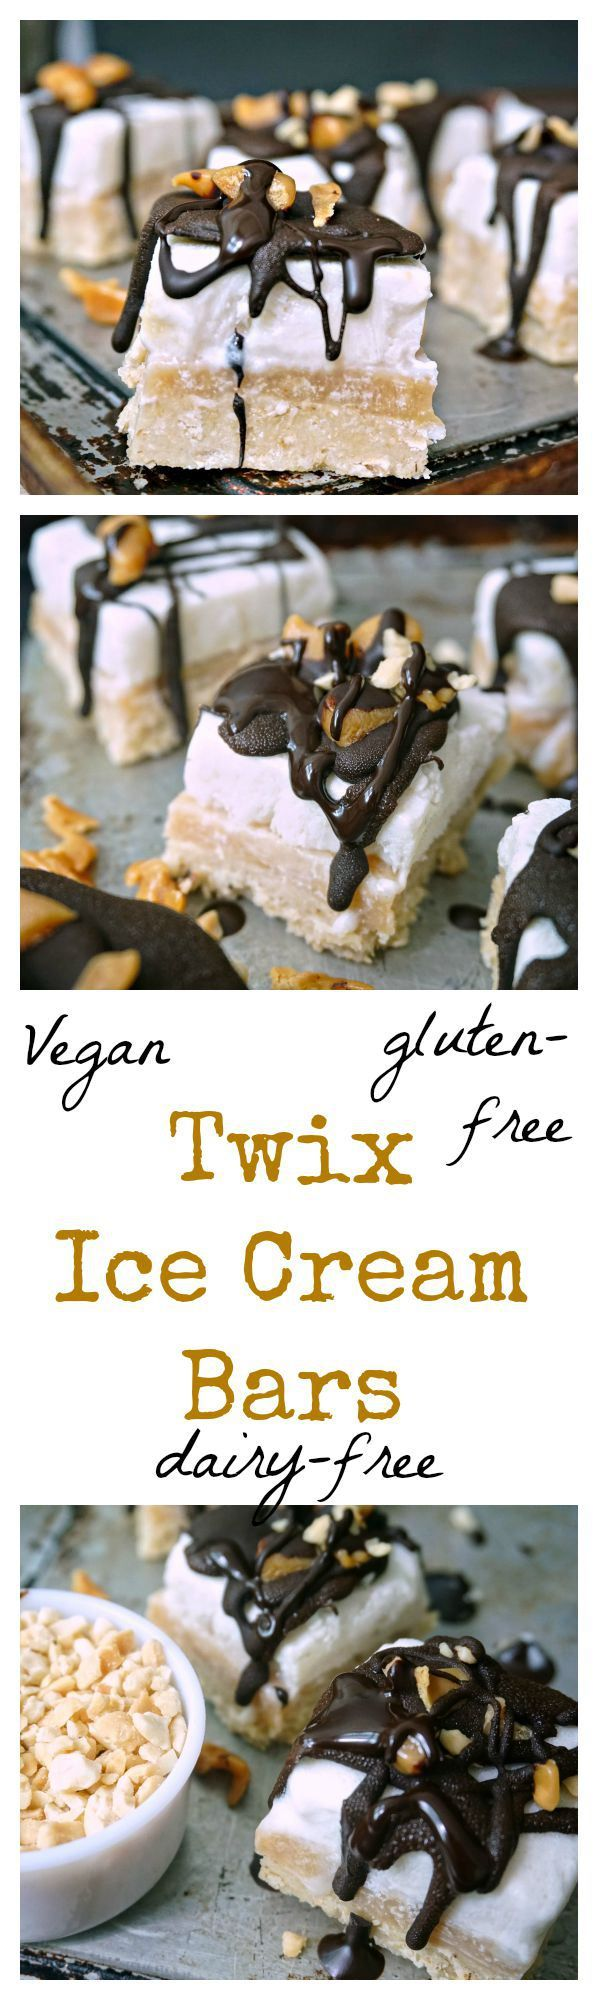 Twix Ice Cream Bars-Vegan, Gluten and Dairy free, with NO refined sugar and no bake time! Easy, sinful dessert perfect for summer nights! | savoringsimple.com